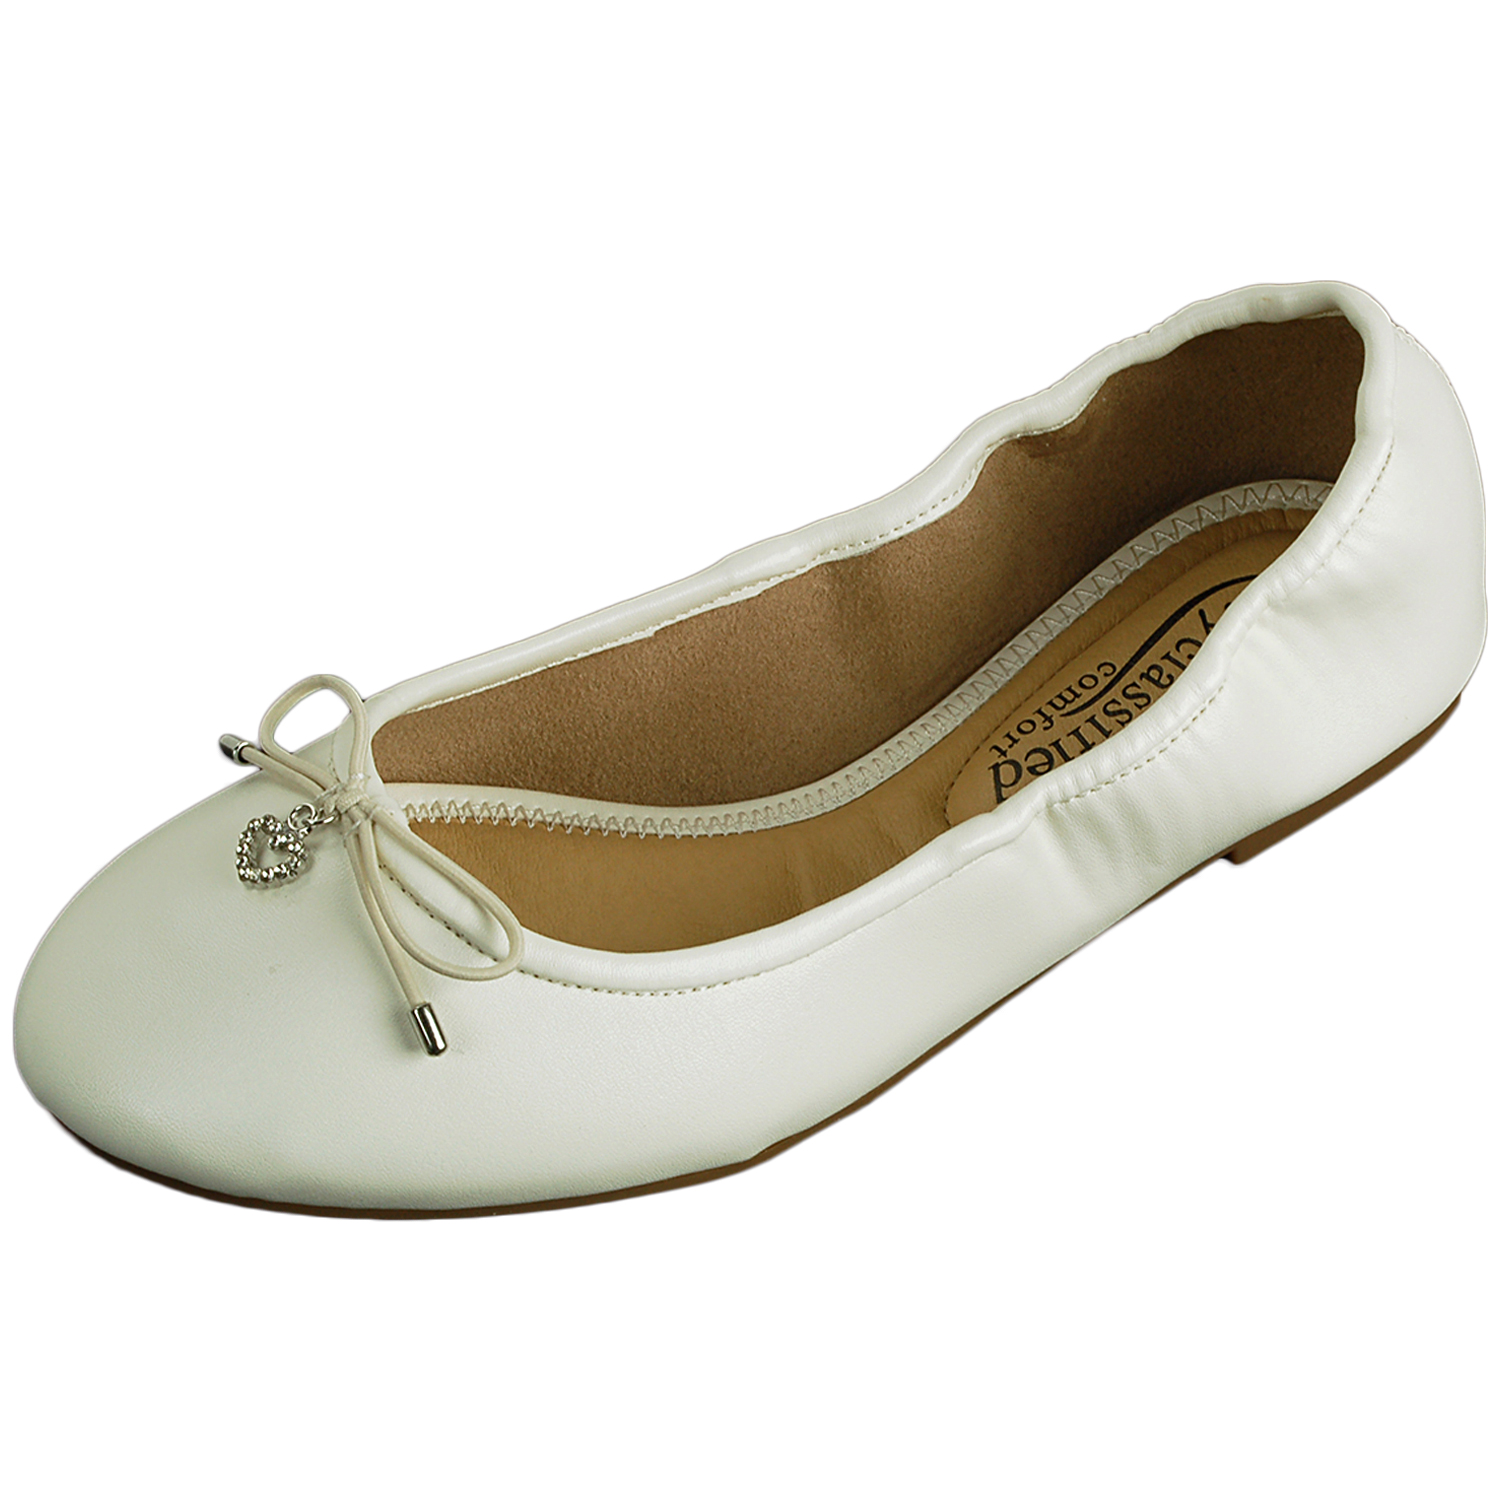 Shop all of our Ballet Flats Dress Shoes. Be the first to hear about new arrivals, special deals, sales and exclusives!